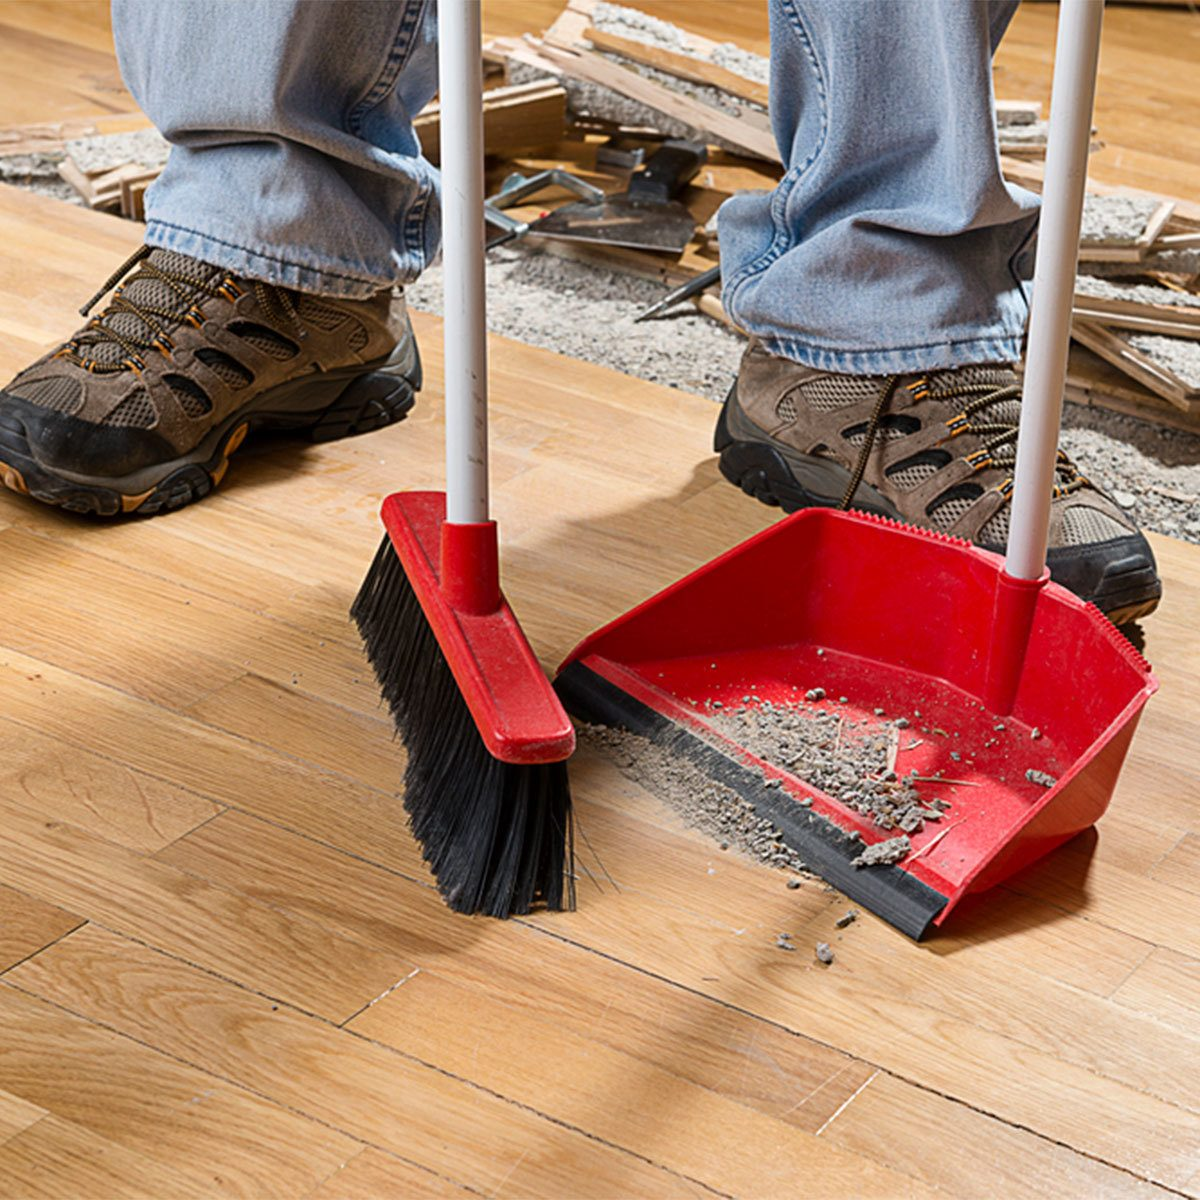 sweep clean up dust